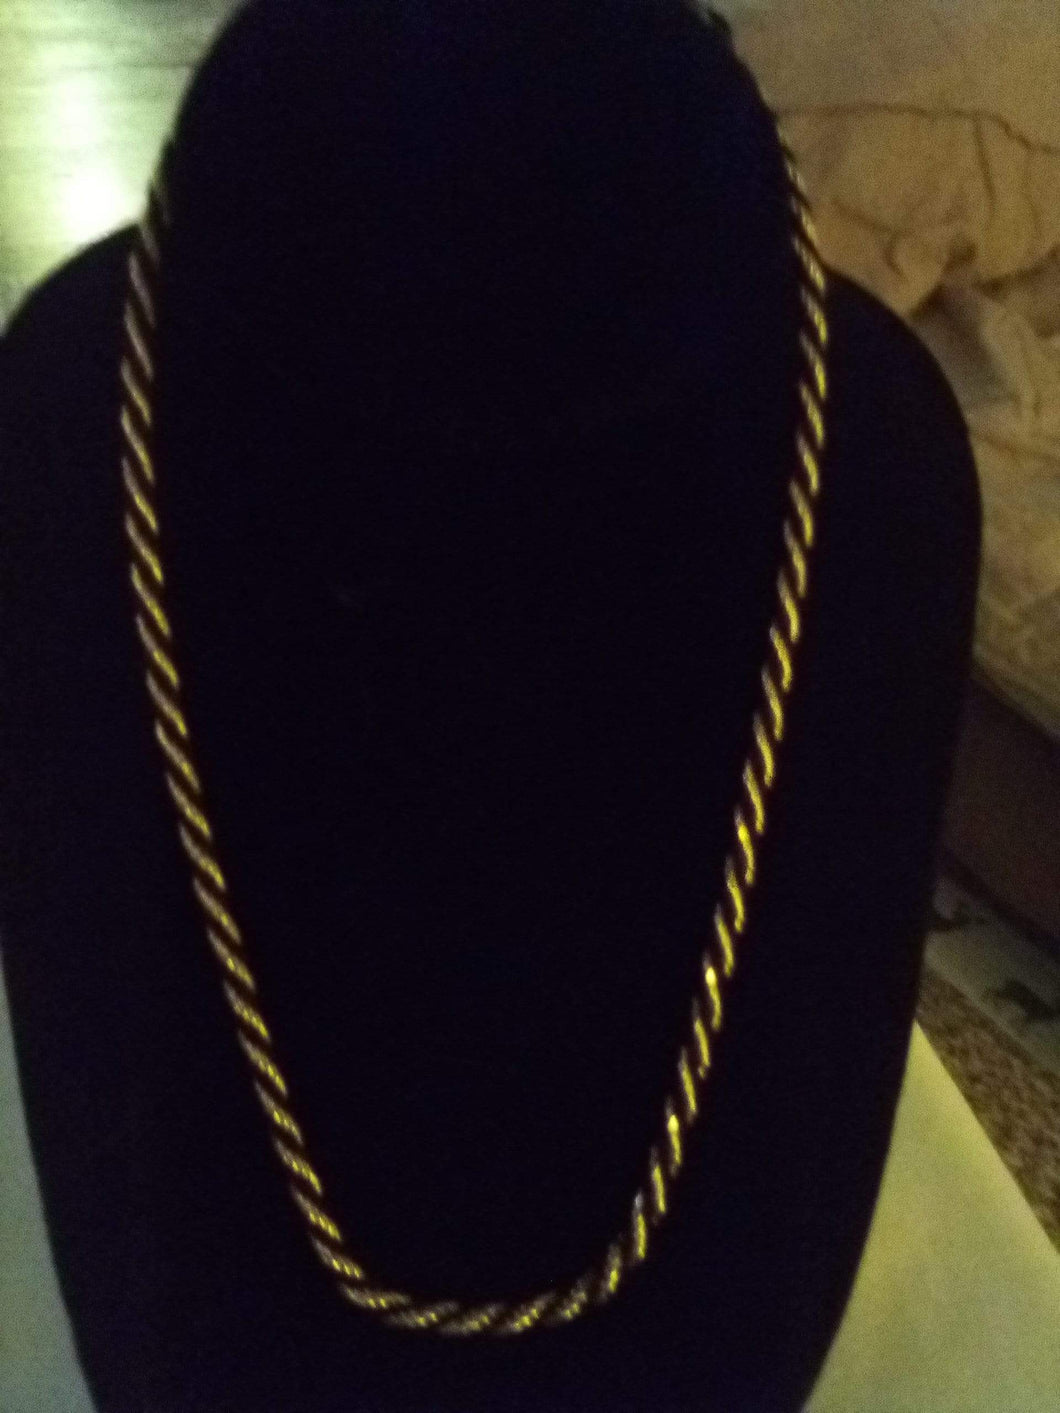 Casual black/gold chain necklace - B&P'sringsnthings